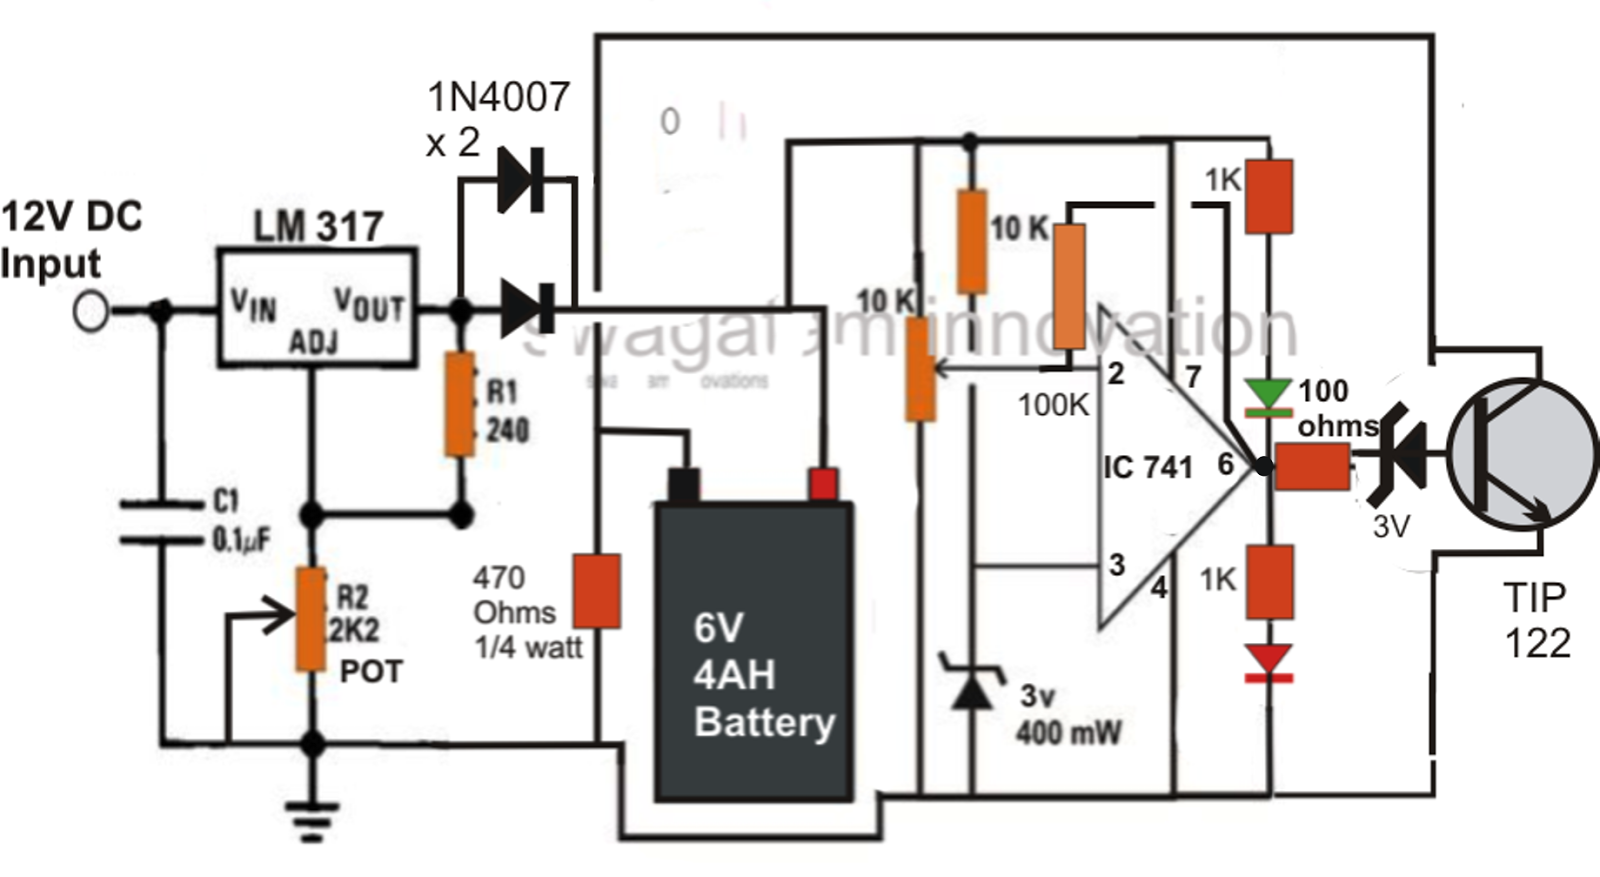 6v Battery Wiring Diagram 2   Wiring Library